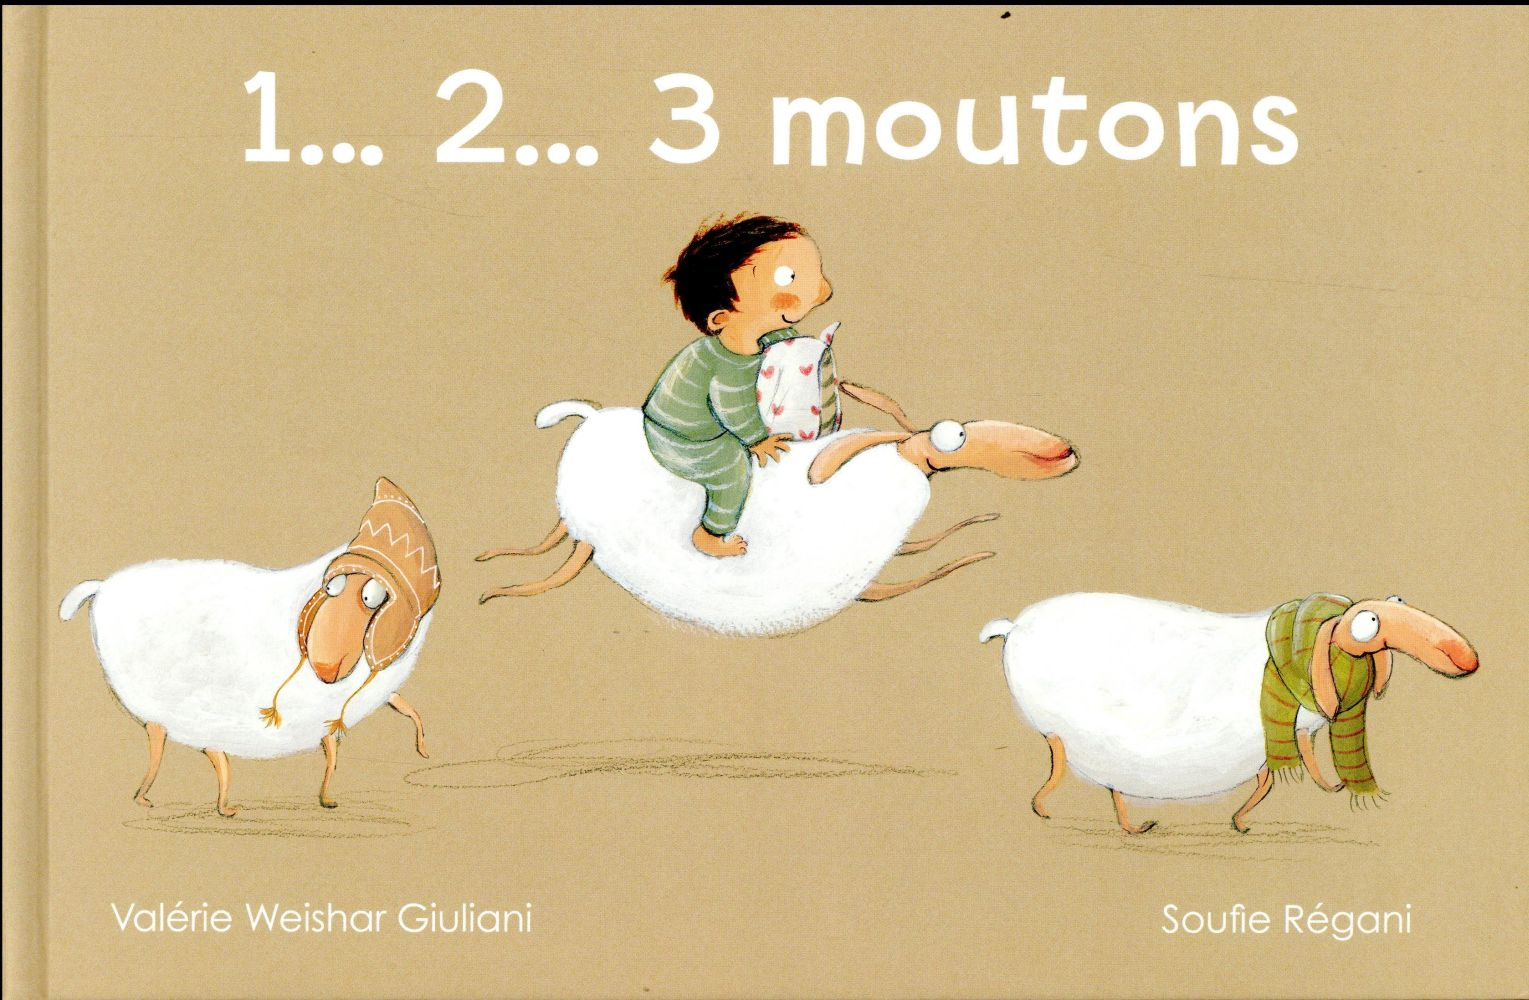 1 2 3 MOUTONS